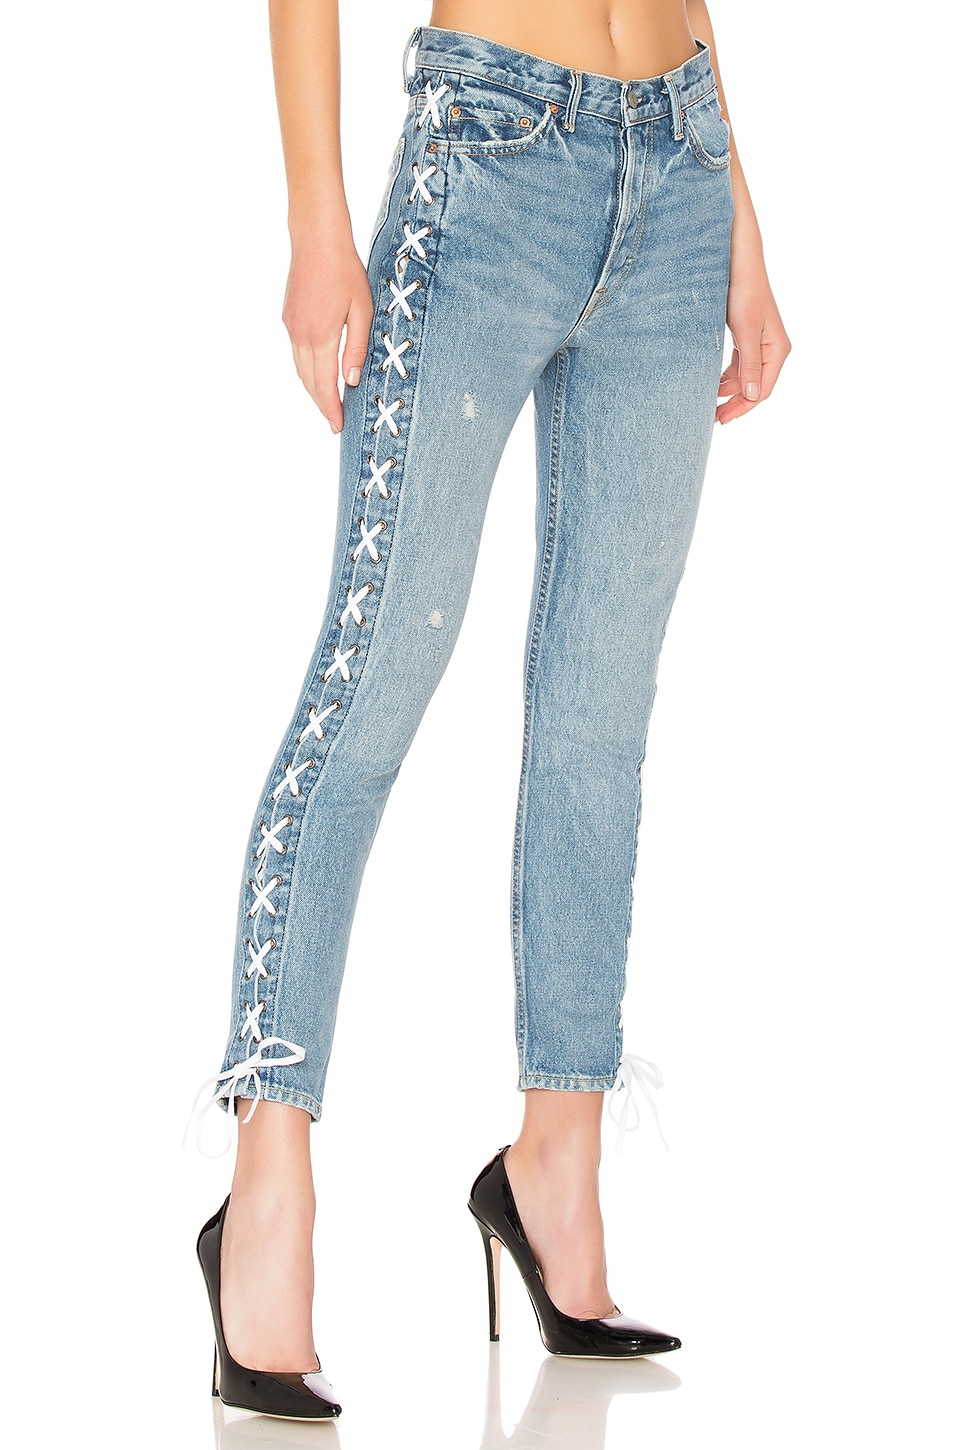 GRLFRND Karolina High-Rise Skinny Jean in Kingdom